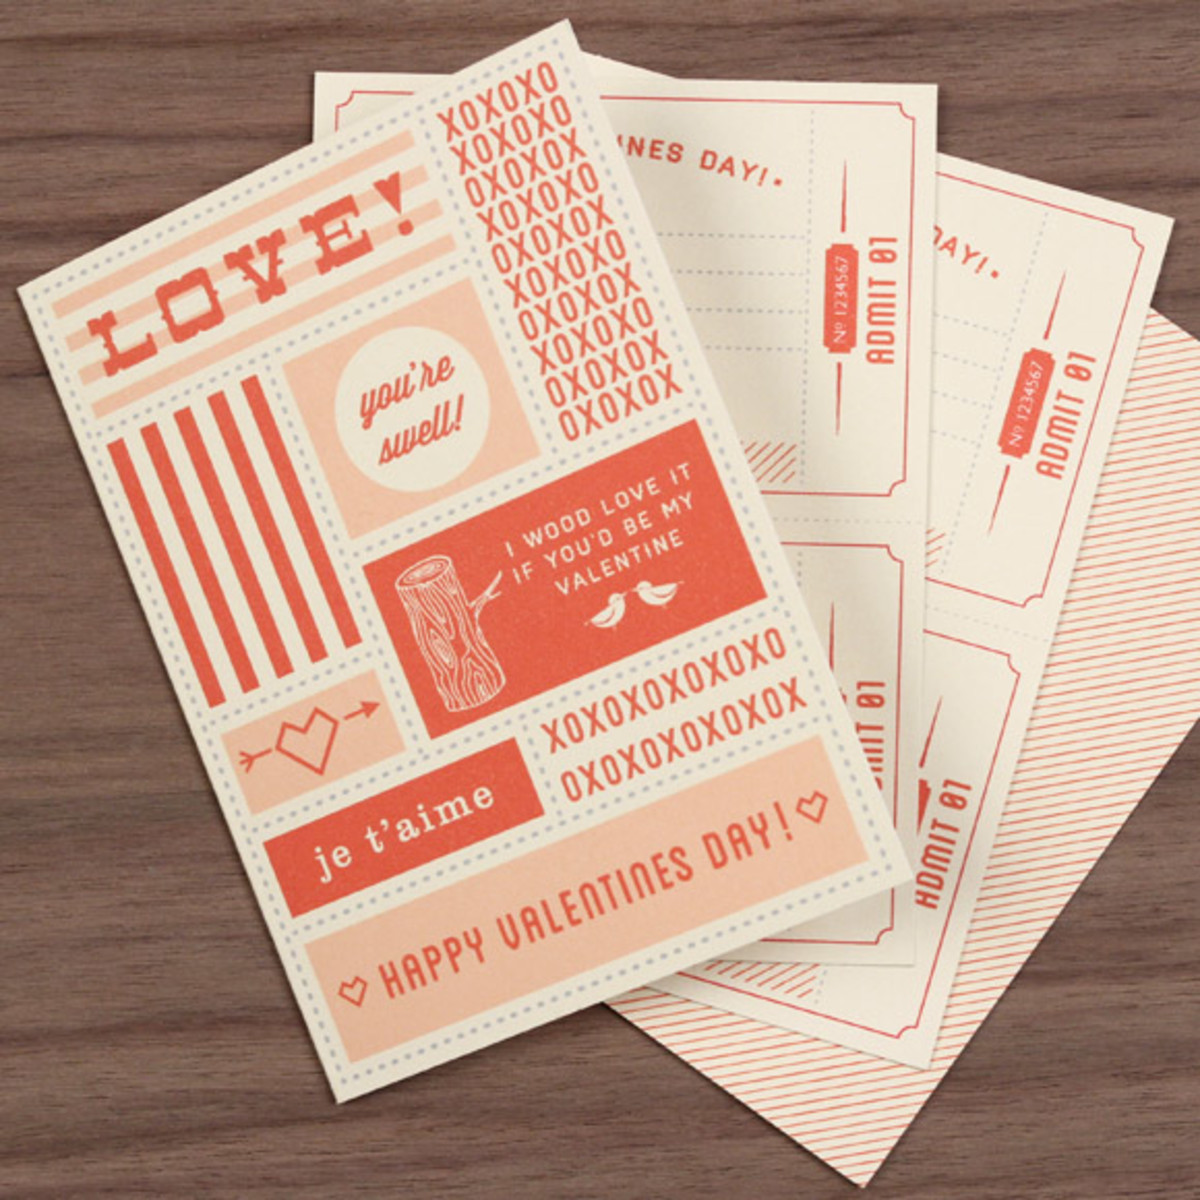 Valentine's Day Coupons are fun to give and to receive on February 14th.  Visit lovevsdesign.com to get some fun Valentine printable ideas.